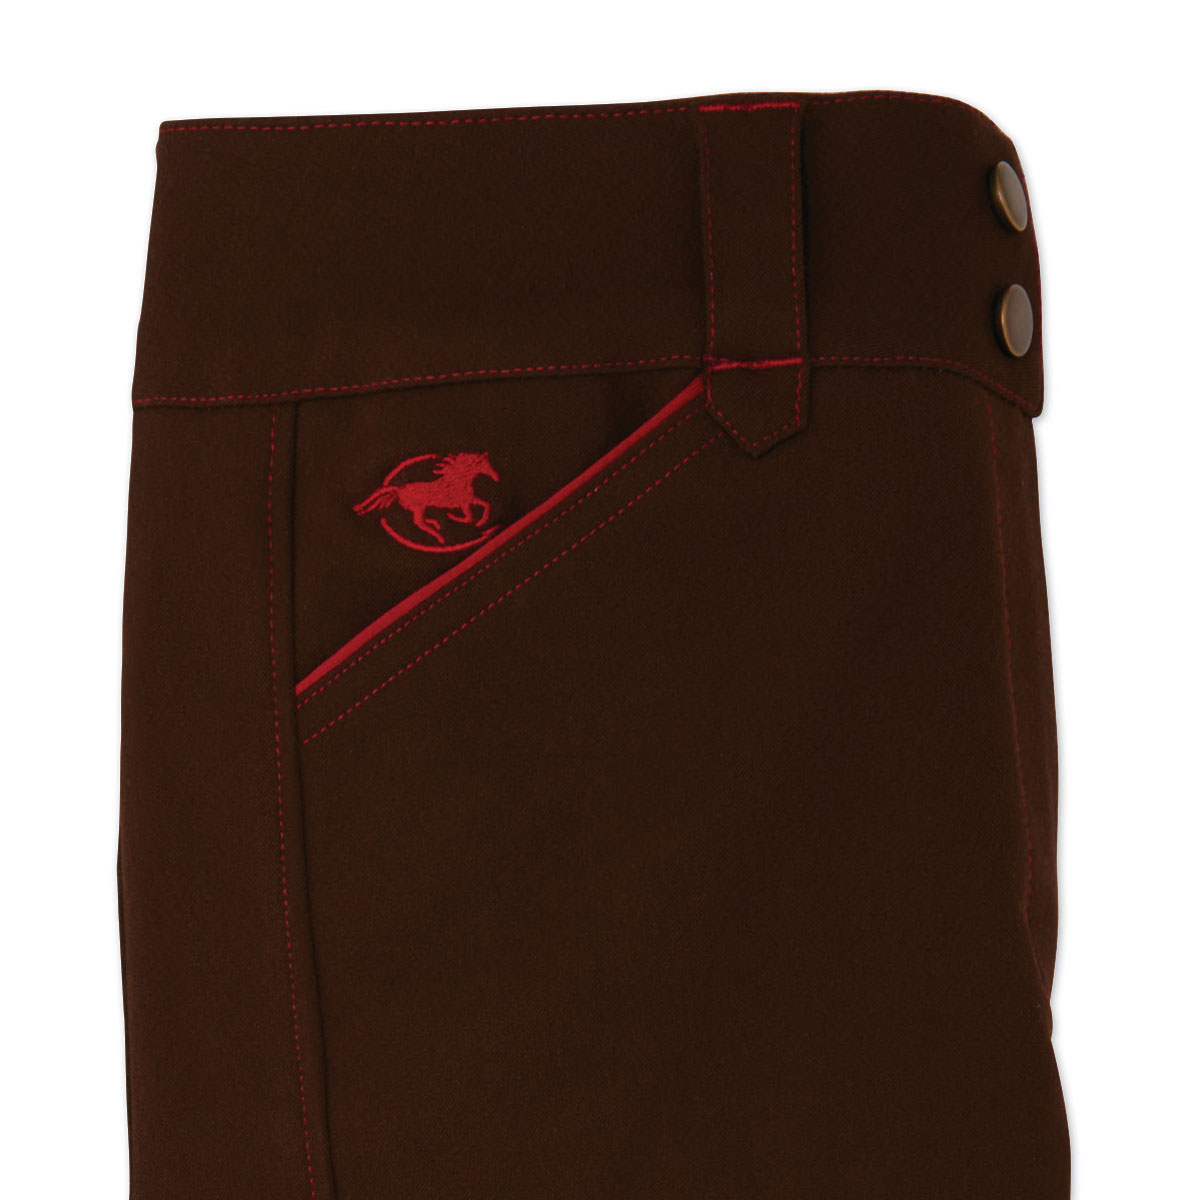 Piper Breeches by SmartPak - Original Knee Patch- Sale!